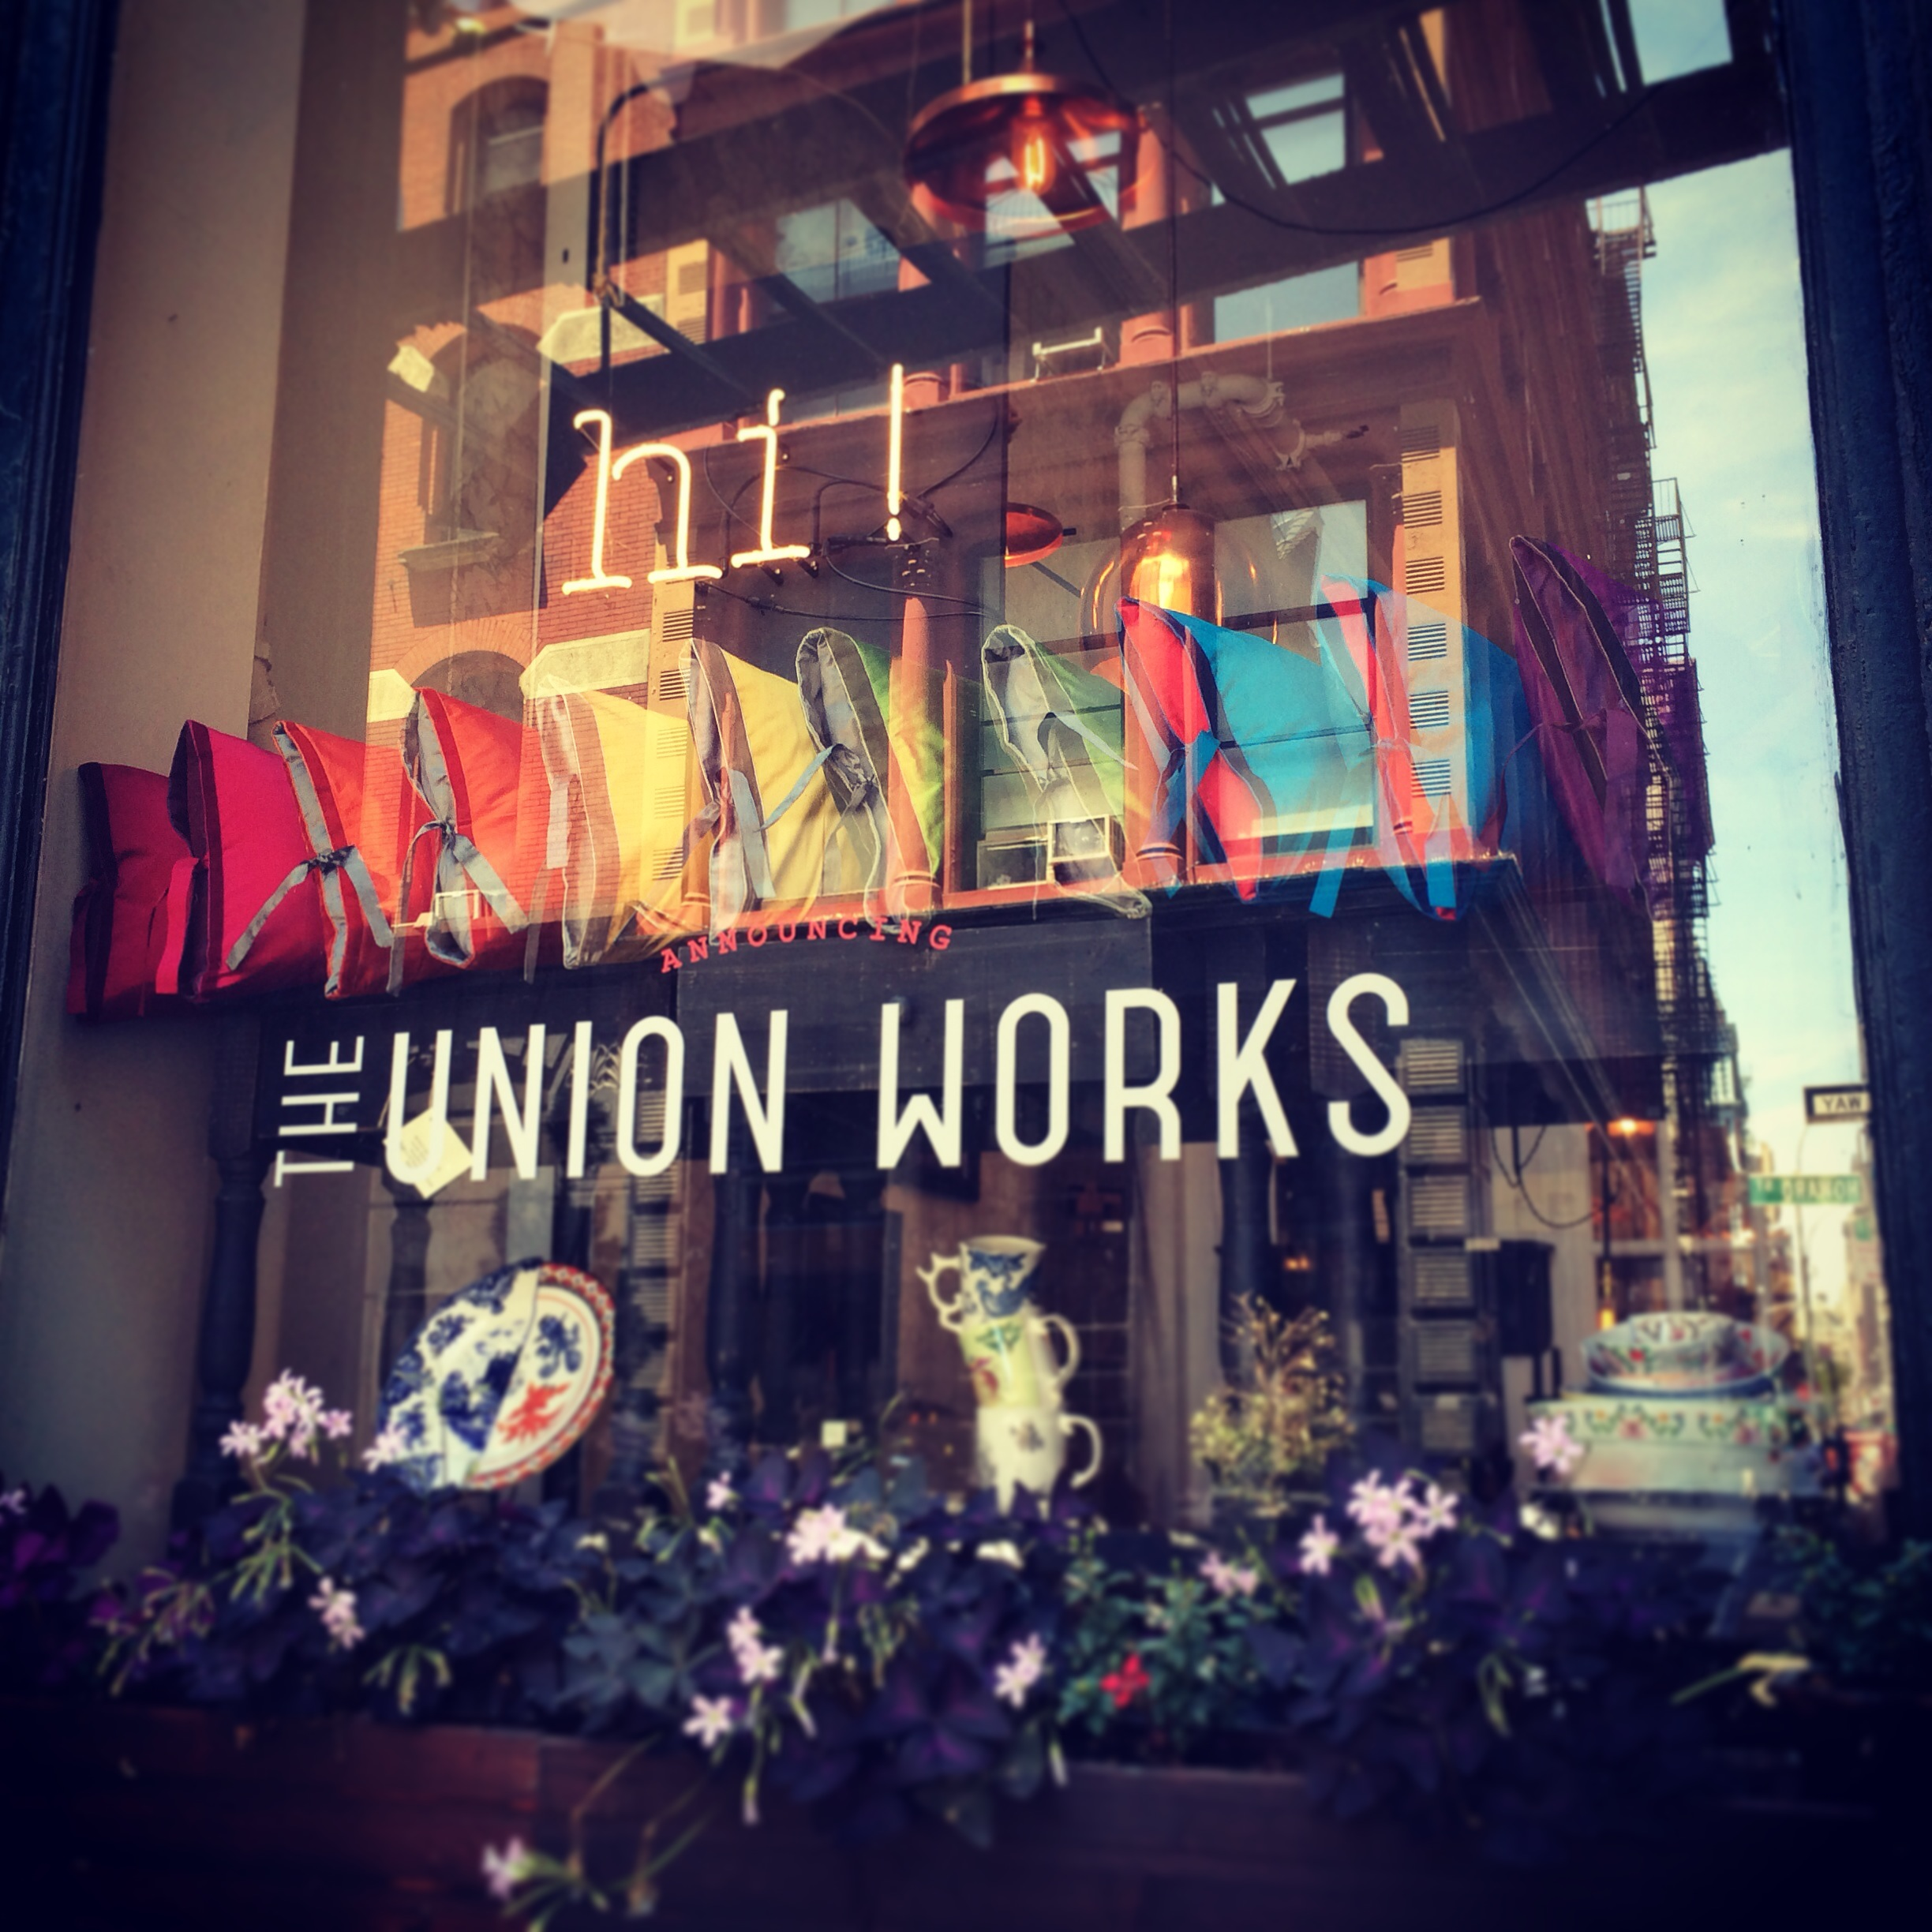 The Union Works NYC Pop-up Shop